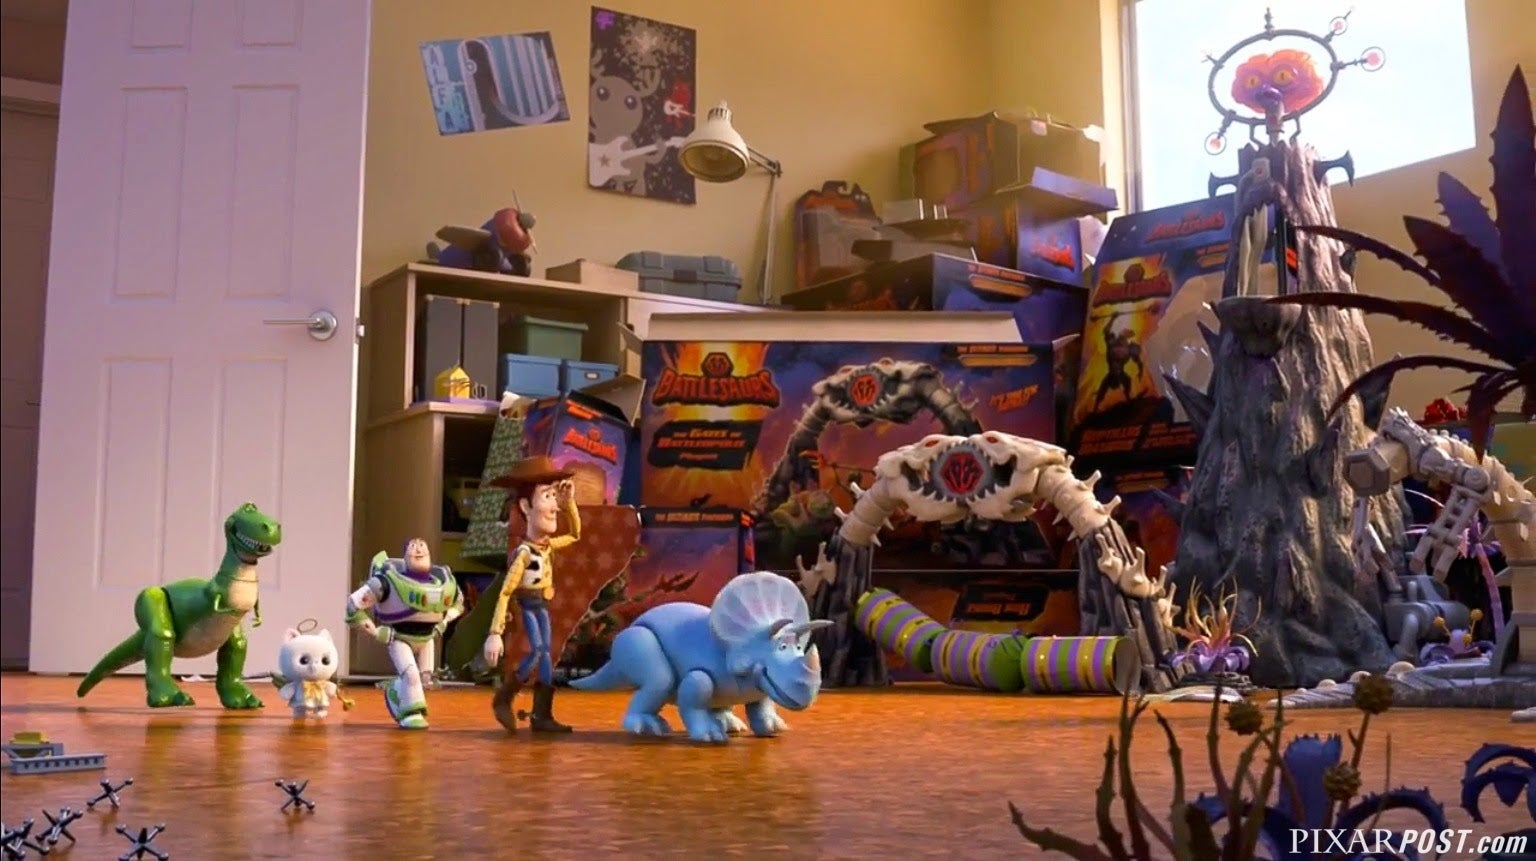 Get a glimpse into the new Toy Story short coming this Christmas